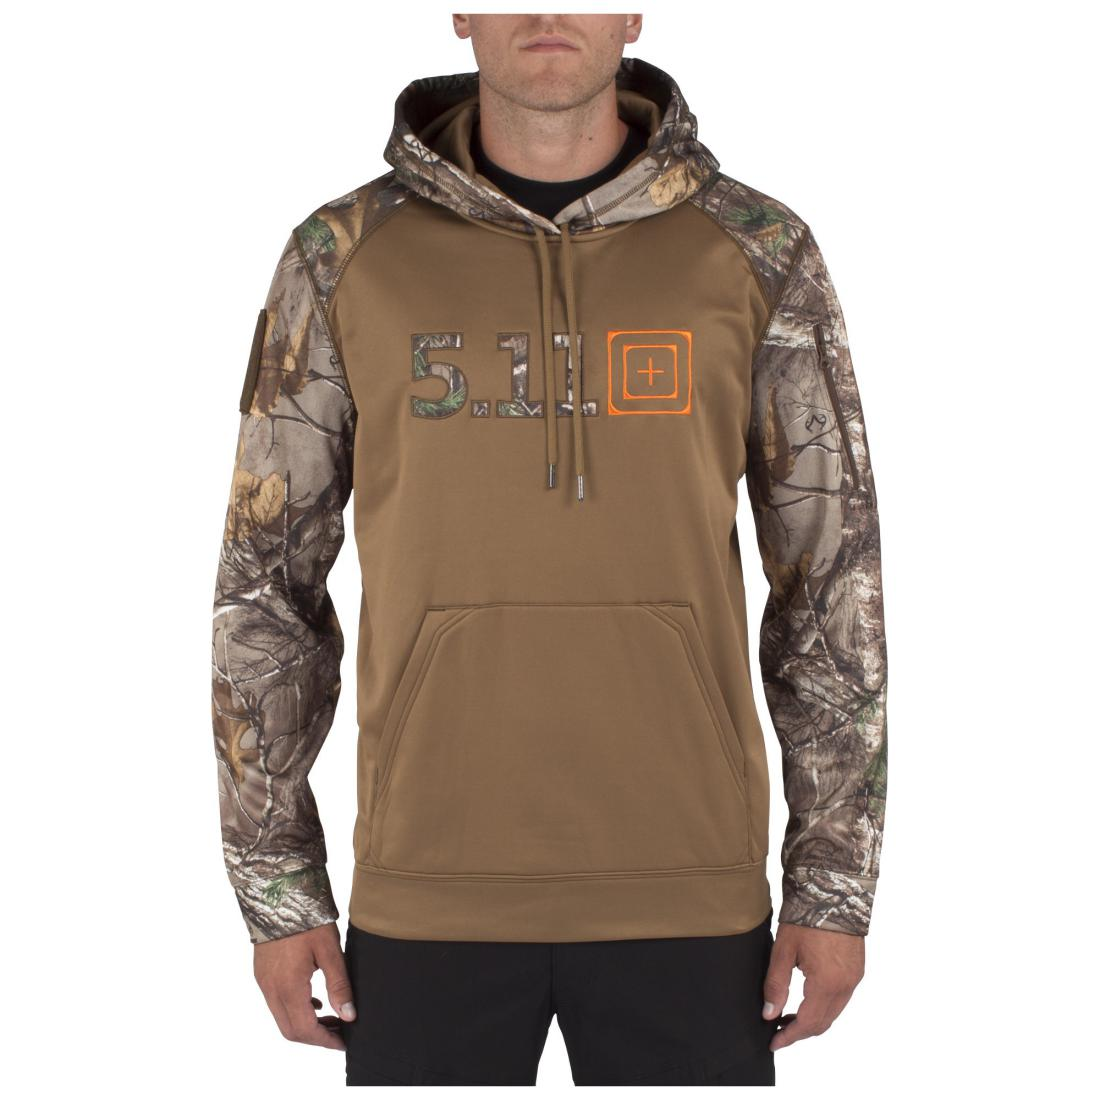 5.11 Tactical Men 72432 Realtree X-Tra Diablo Hoodie Battle Brown